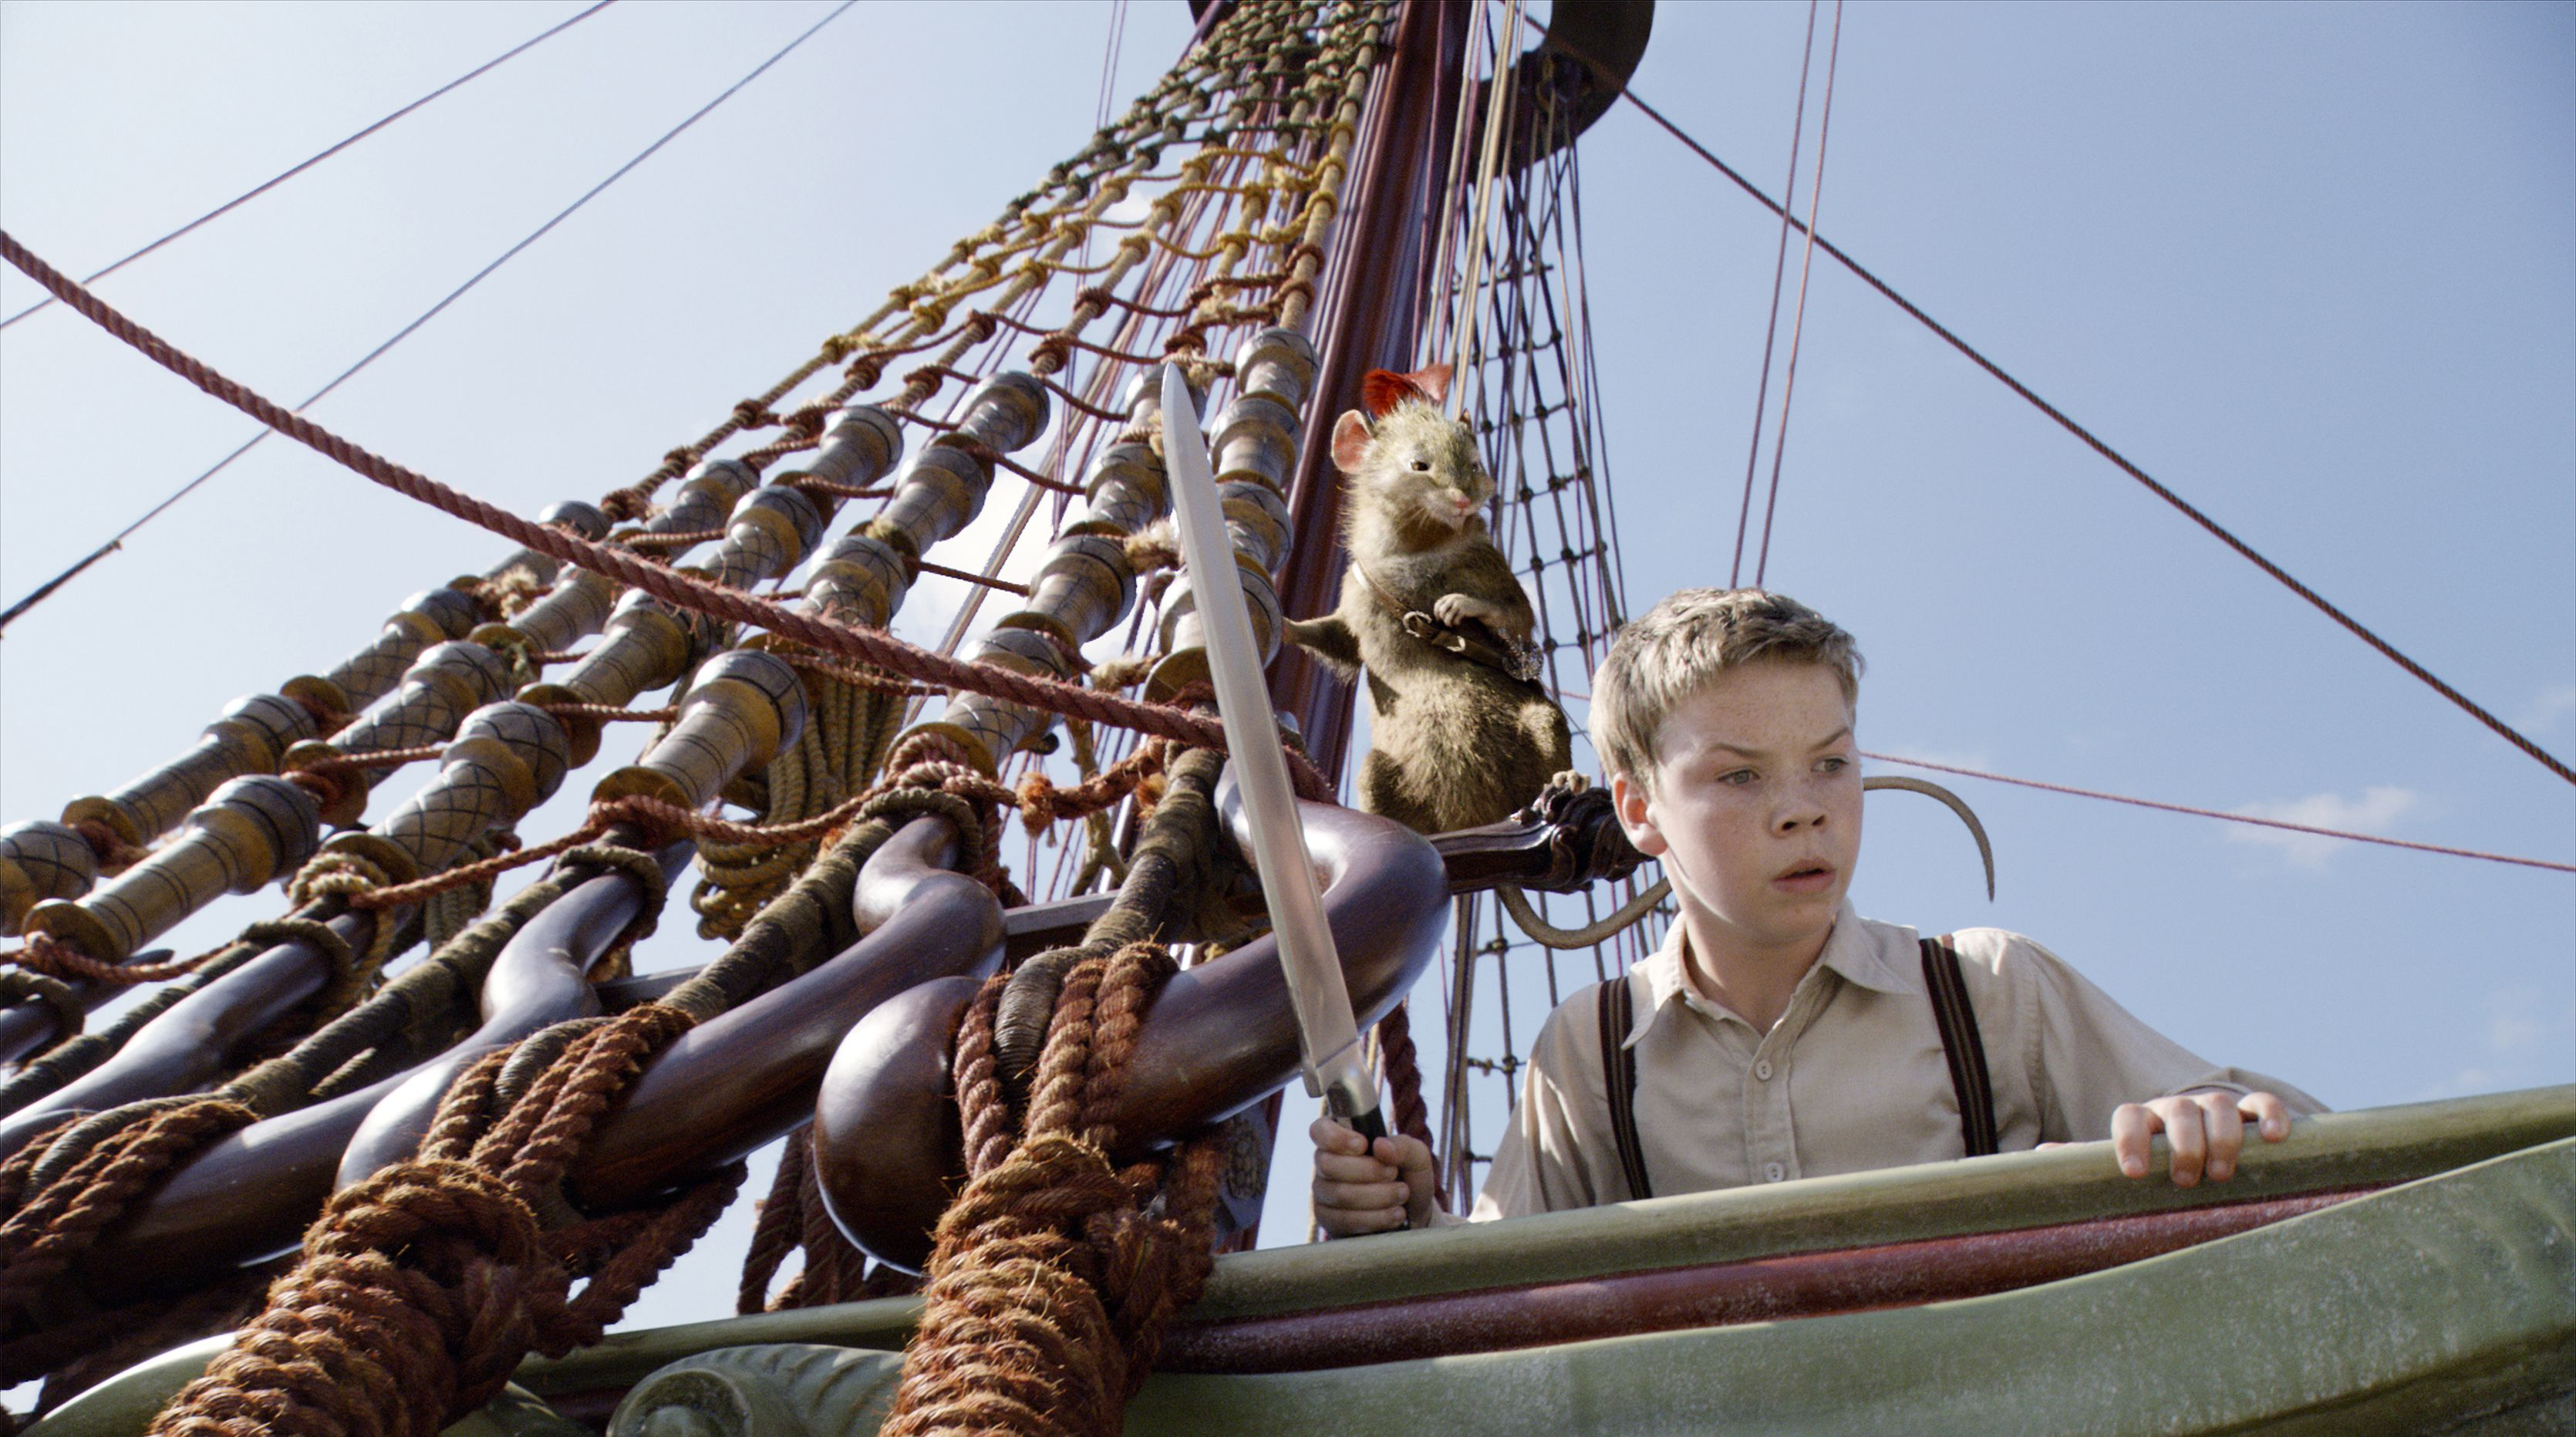 An image from The Chronicles of Narnia: The Voyage of the Dawn Treader